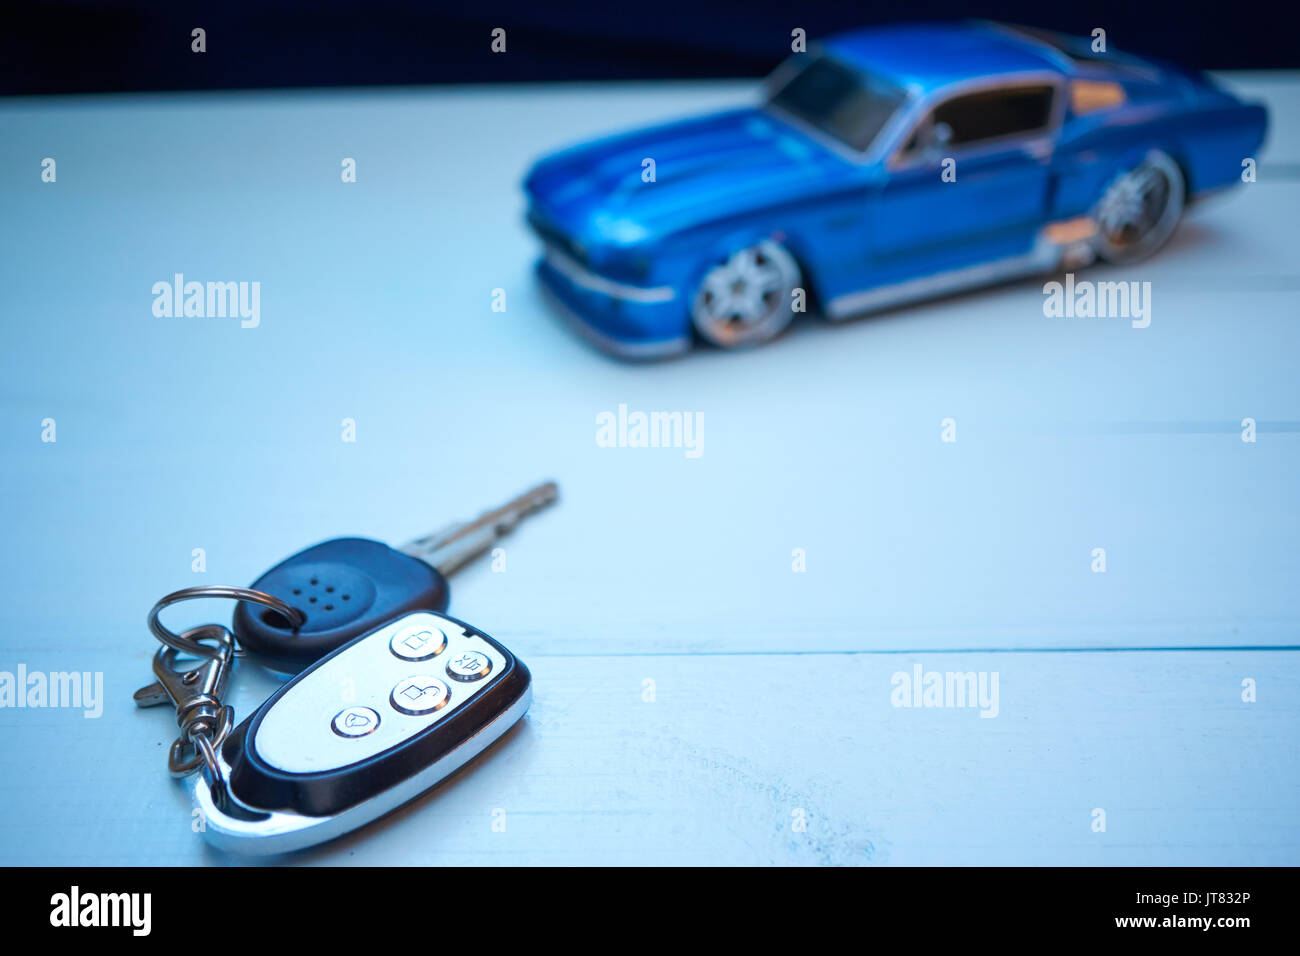 Car Keys On A Desk With Toy Car Blurred On Background Car Rental Stock Photo Alamy